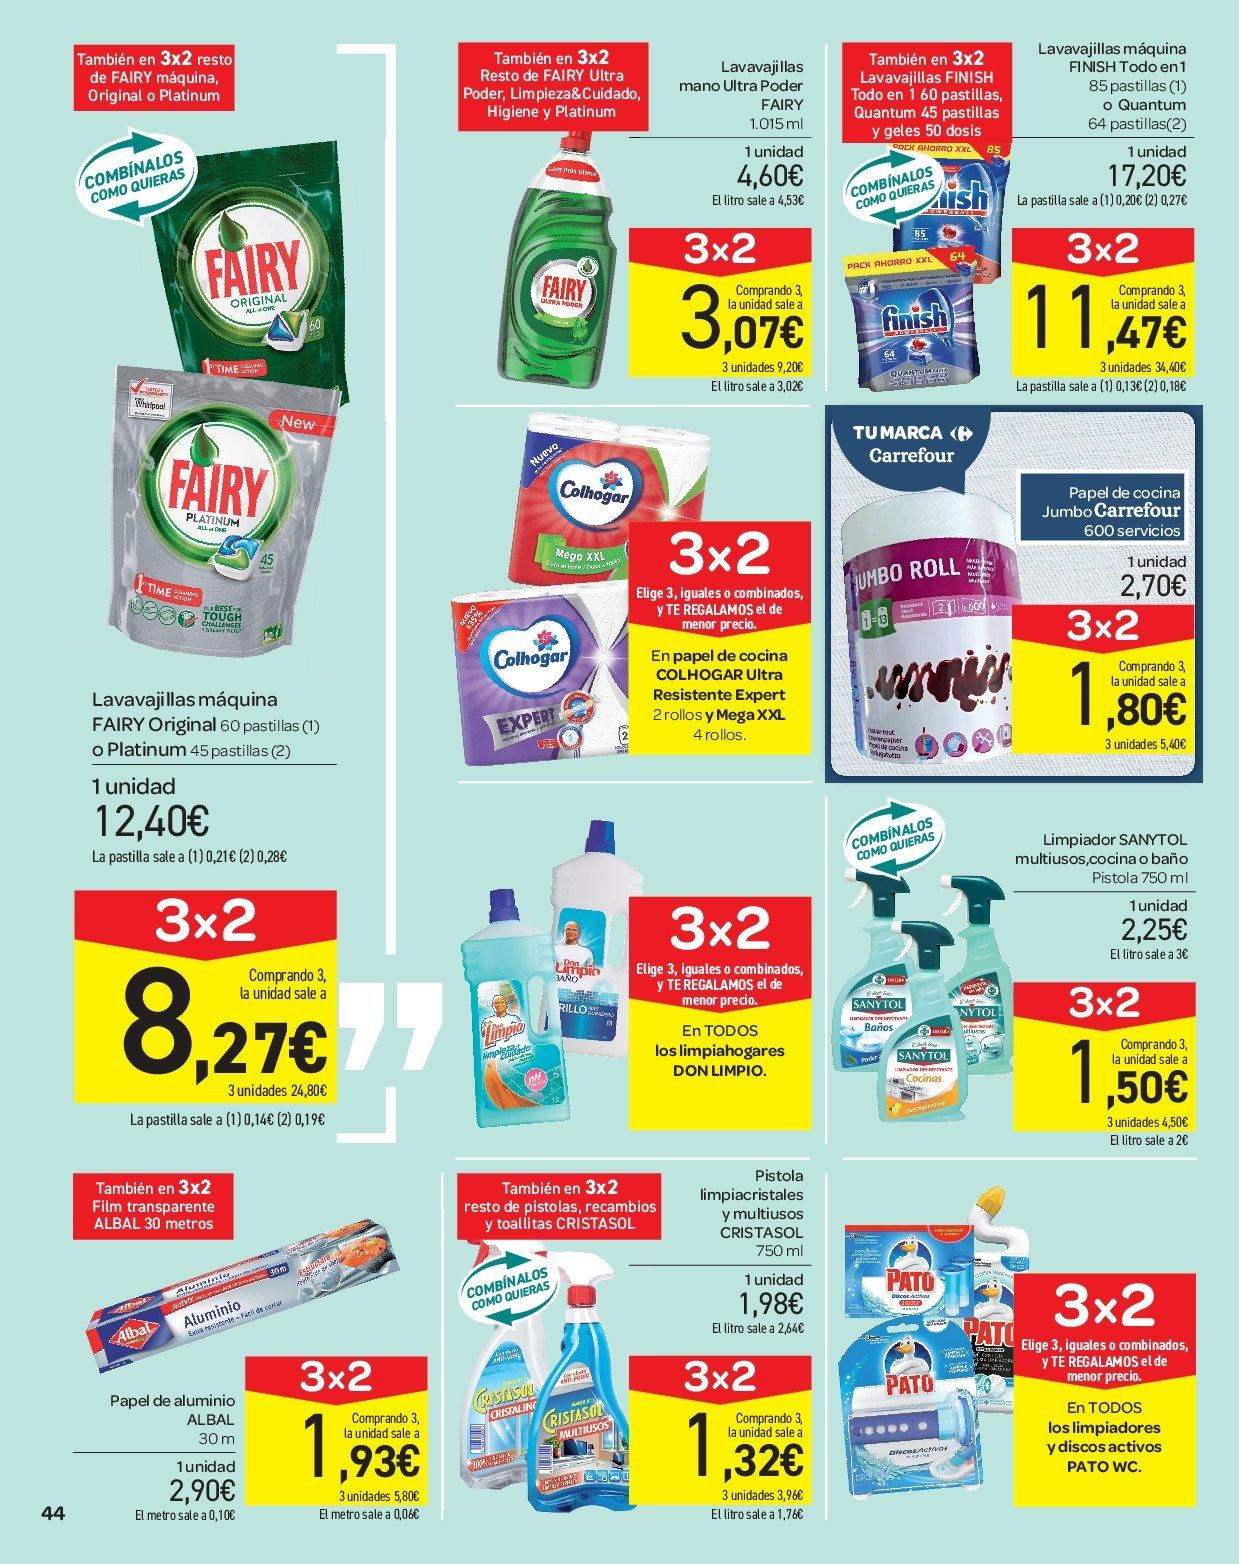 Folleto actual Carrefour - 2.1.2019 - 16.1.2019 - Ventas - papel de e618155ab061